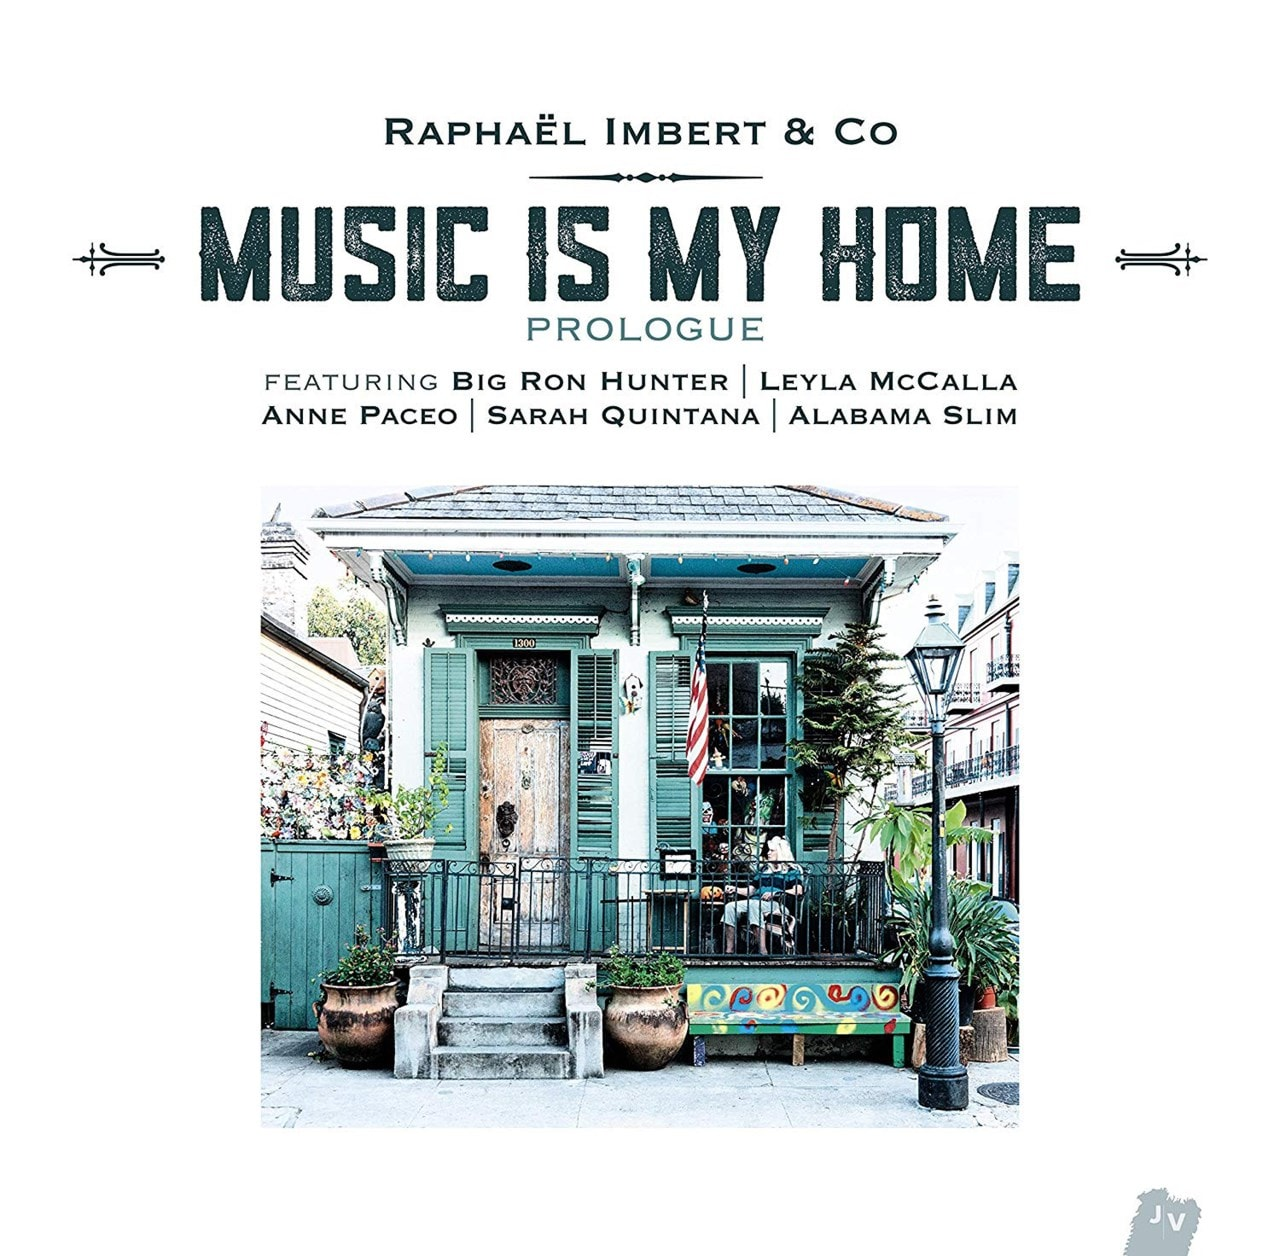 Music Is My Home: Prologue - 1